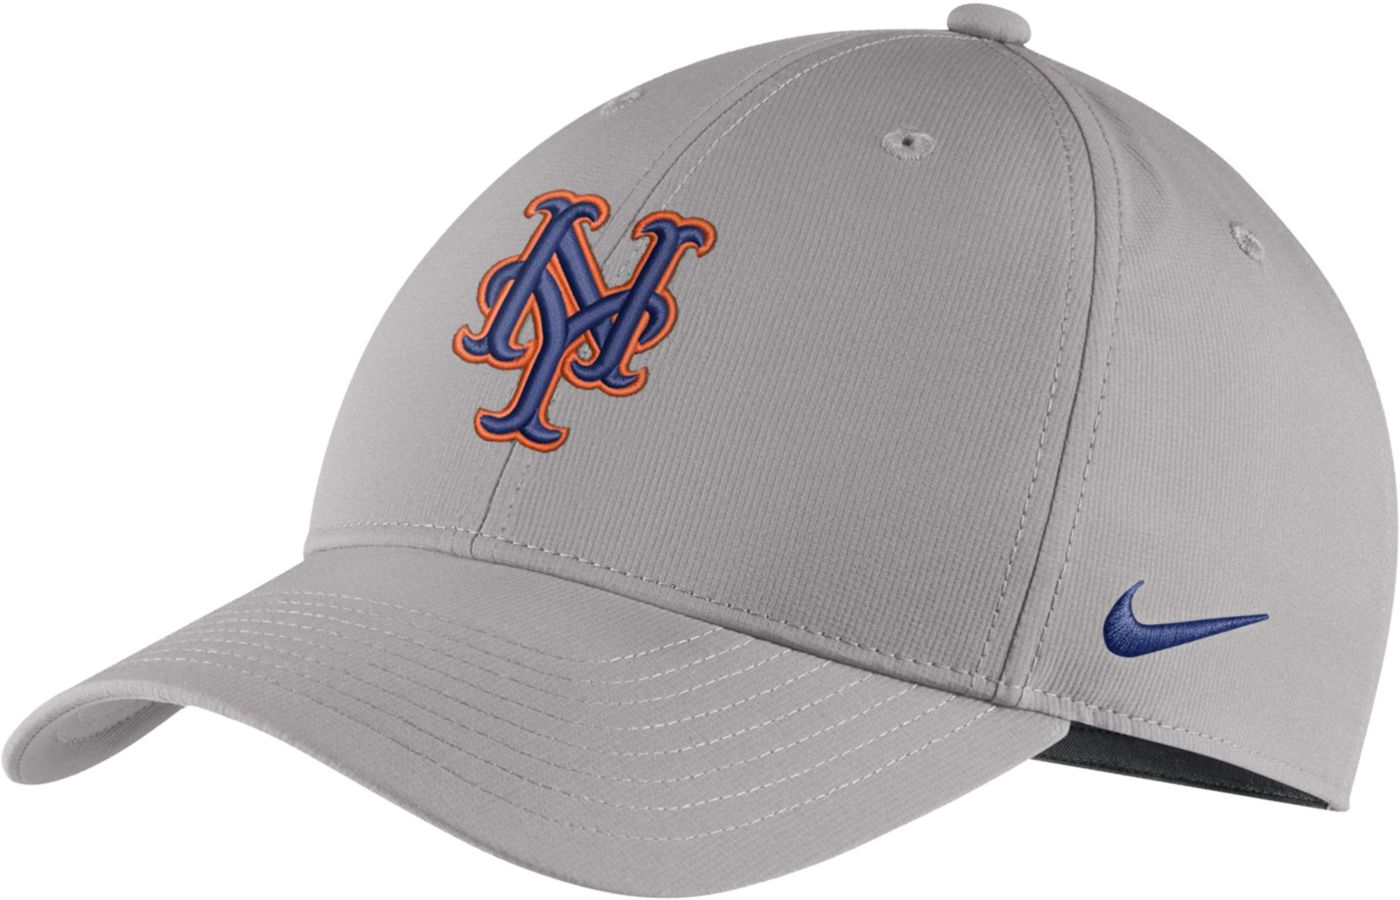 Nike Men's New York Mets Dri-FIT Legacy 91 Adjustable Hat